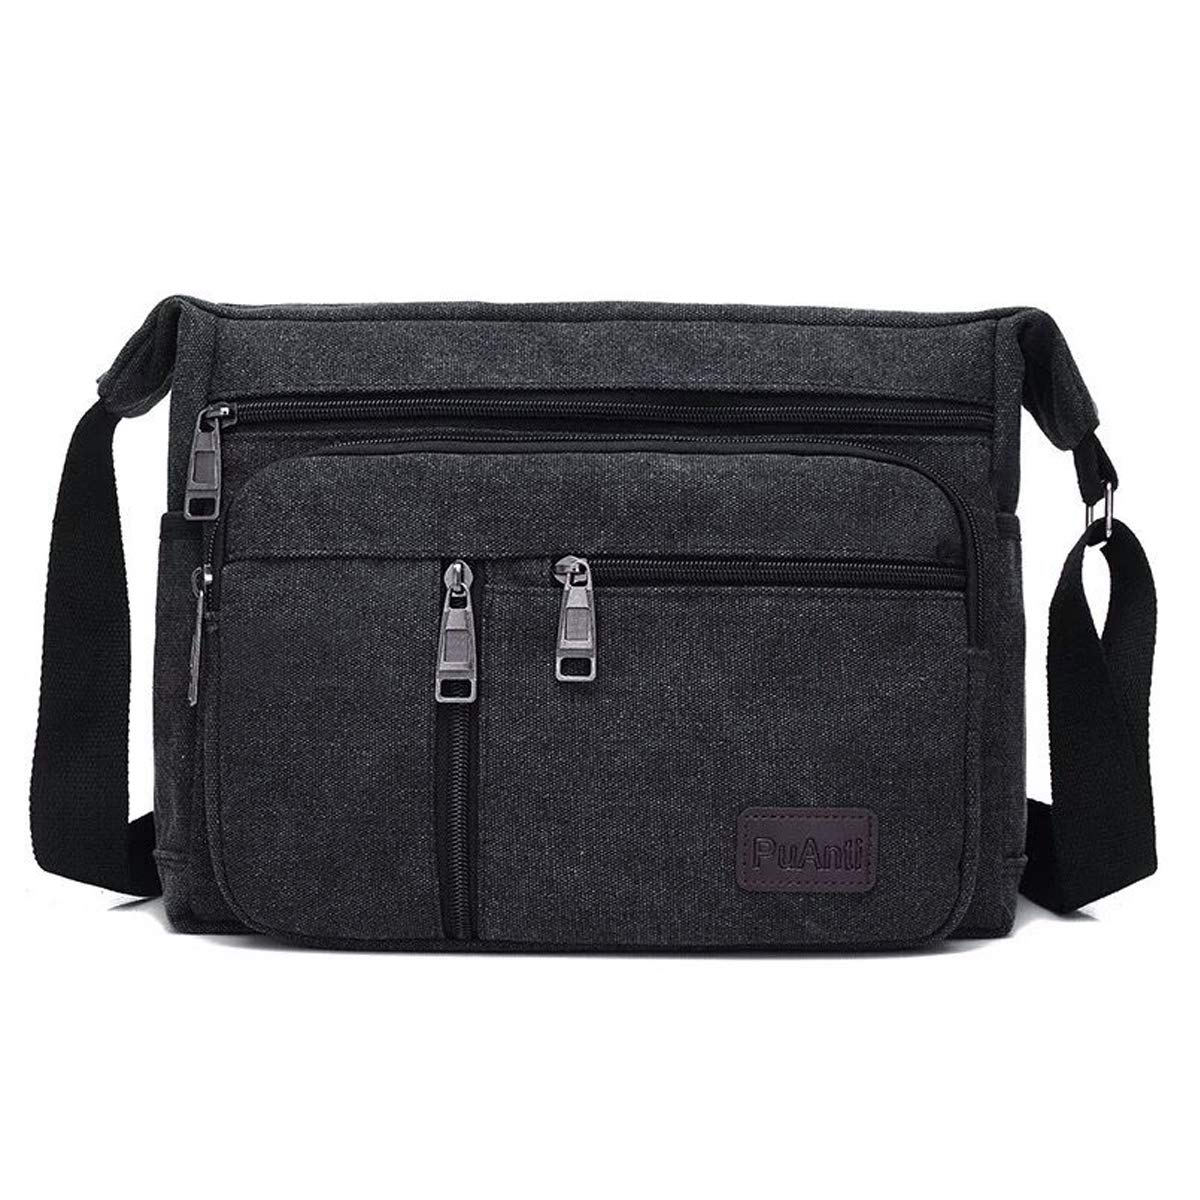 BOMKEE Water Resistant Canvas Crossbody Bag Messenger Bag Satchel Shoulder Sling Working Bag Bookbag Briefcase for Men and Women,Black